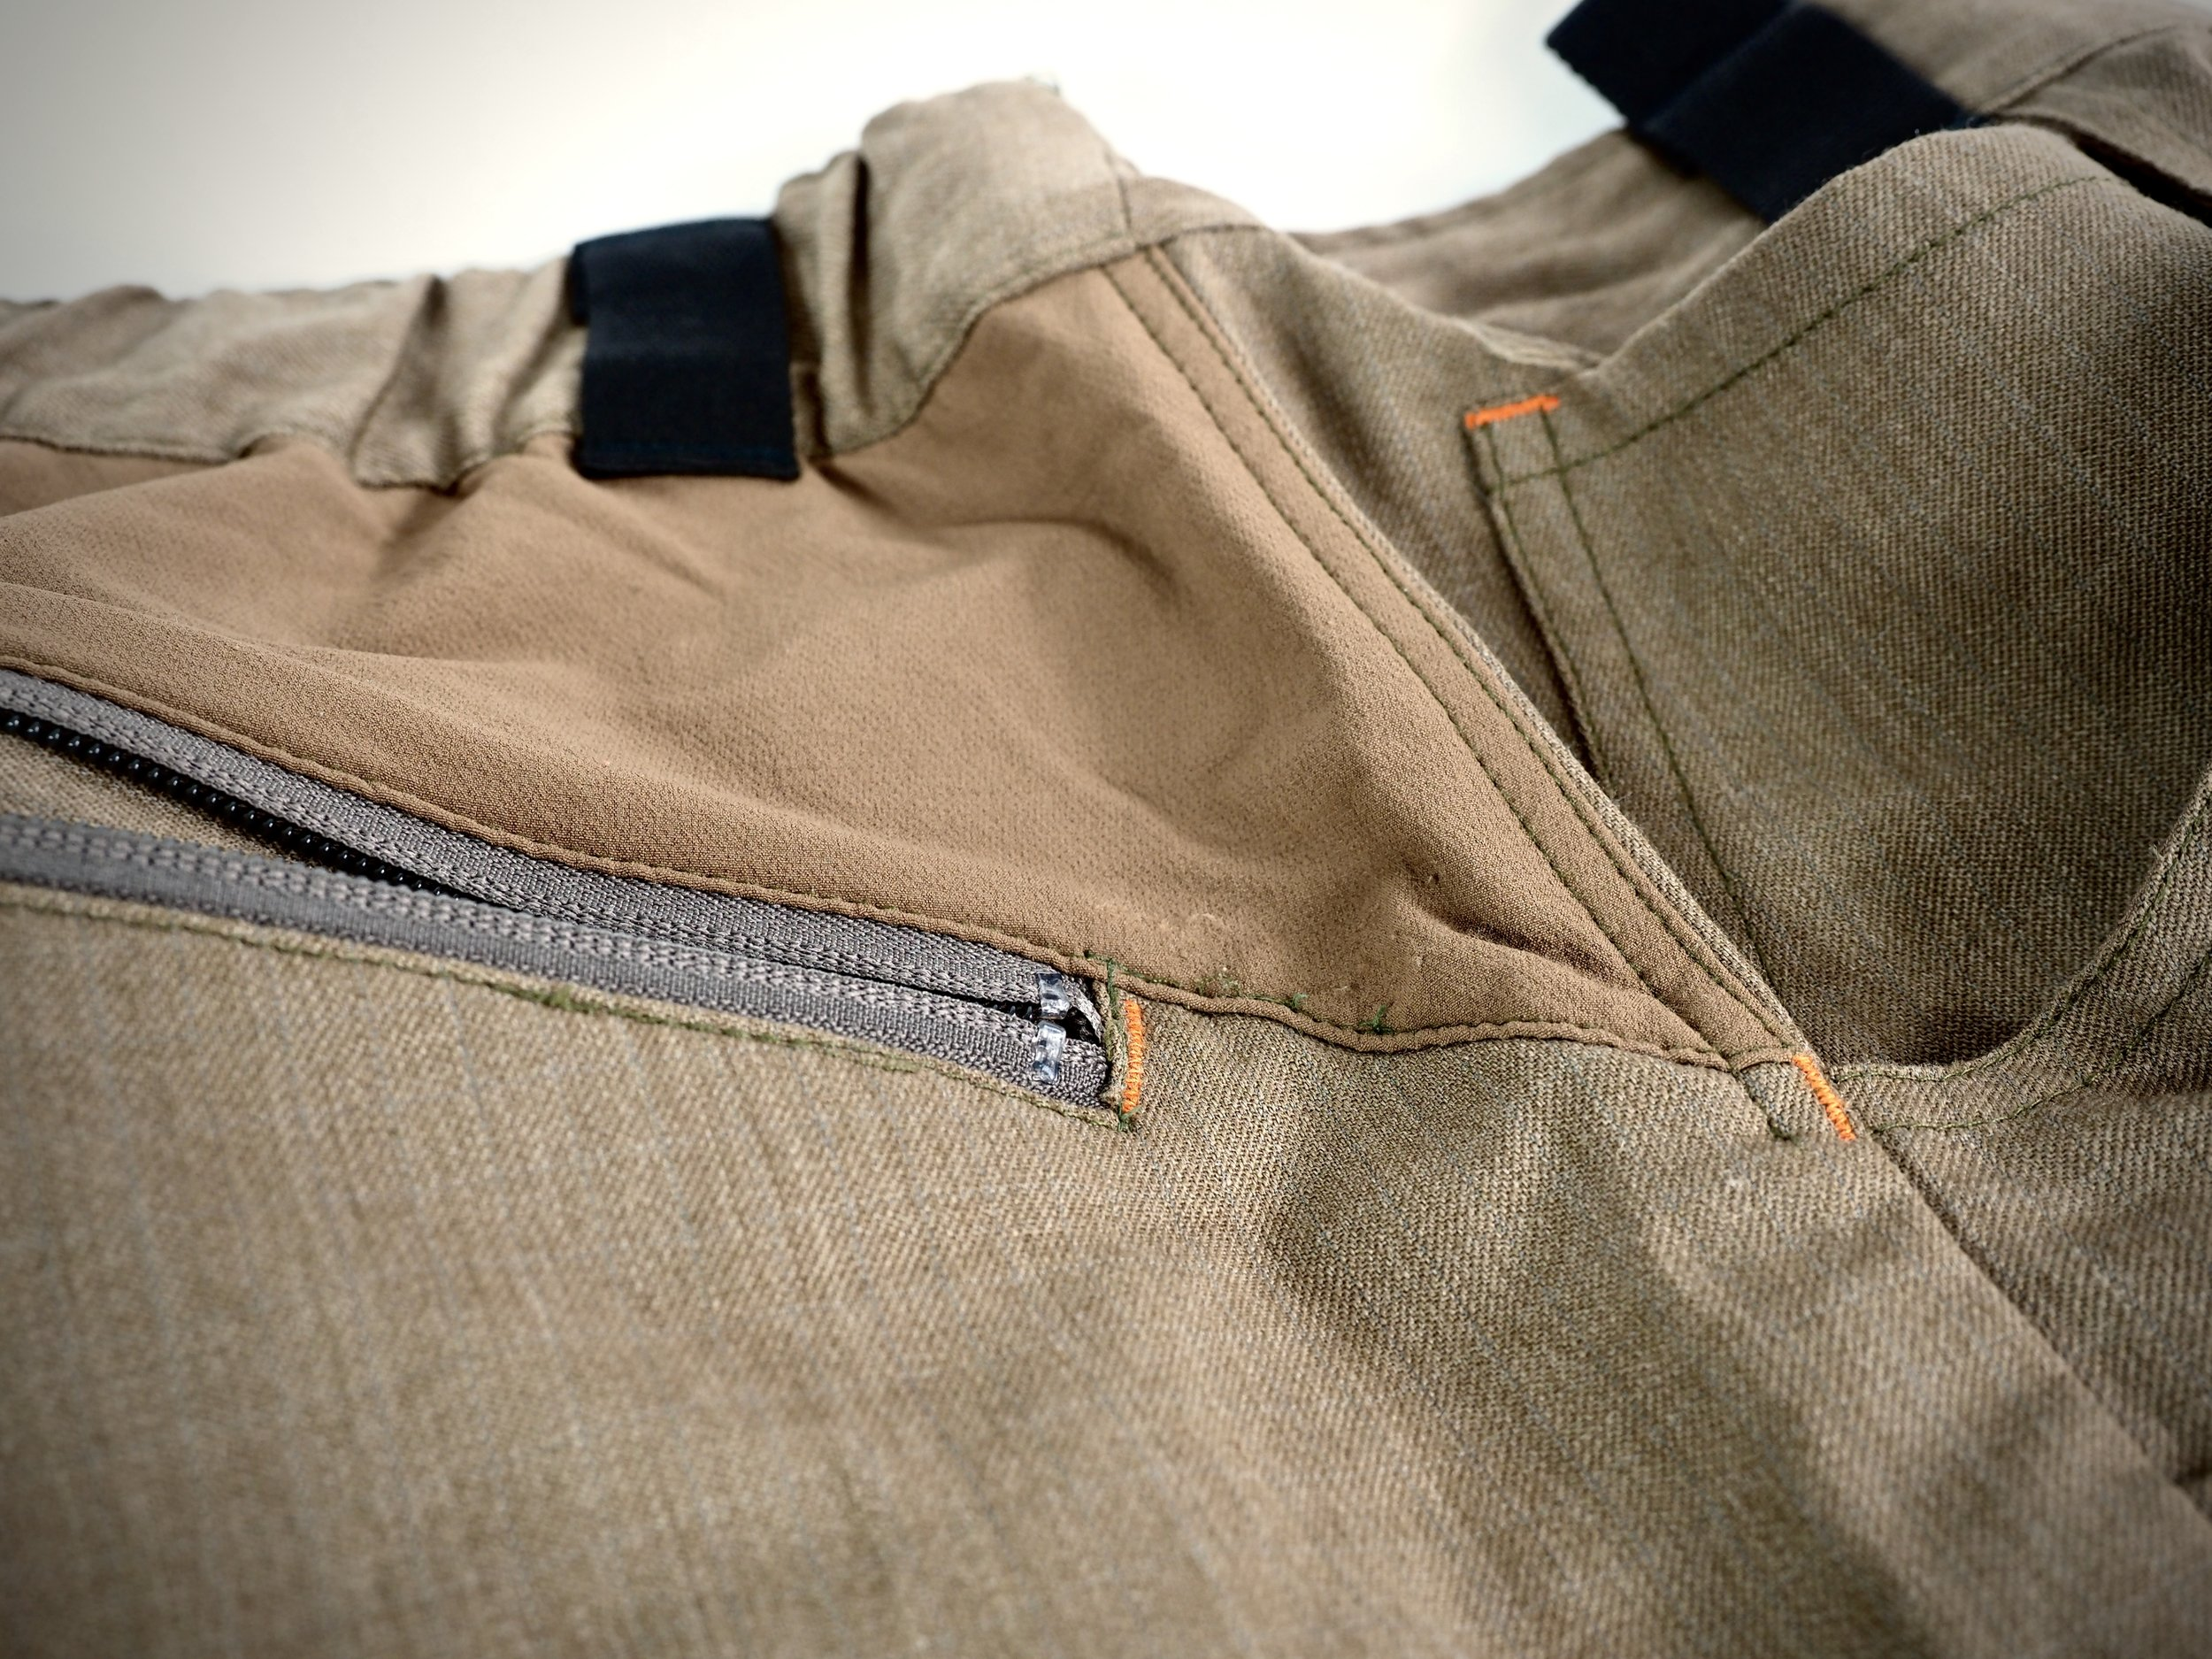 The Kanab pant offers stretch panels at various places throughout the trouser to help give when climbing up and over logs or obstacles.